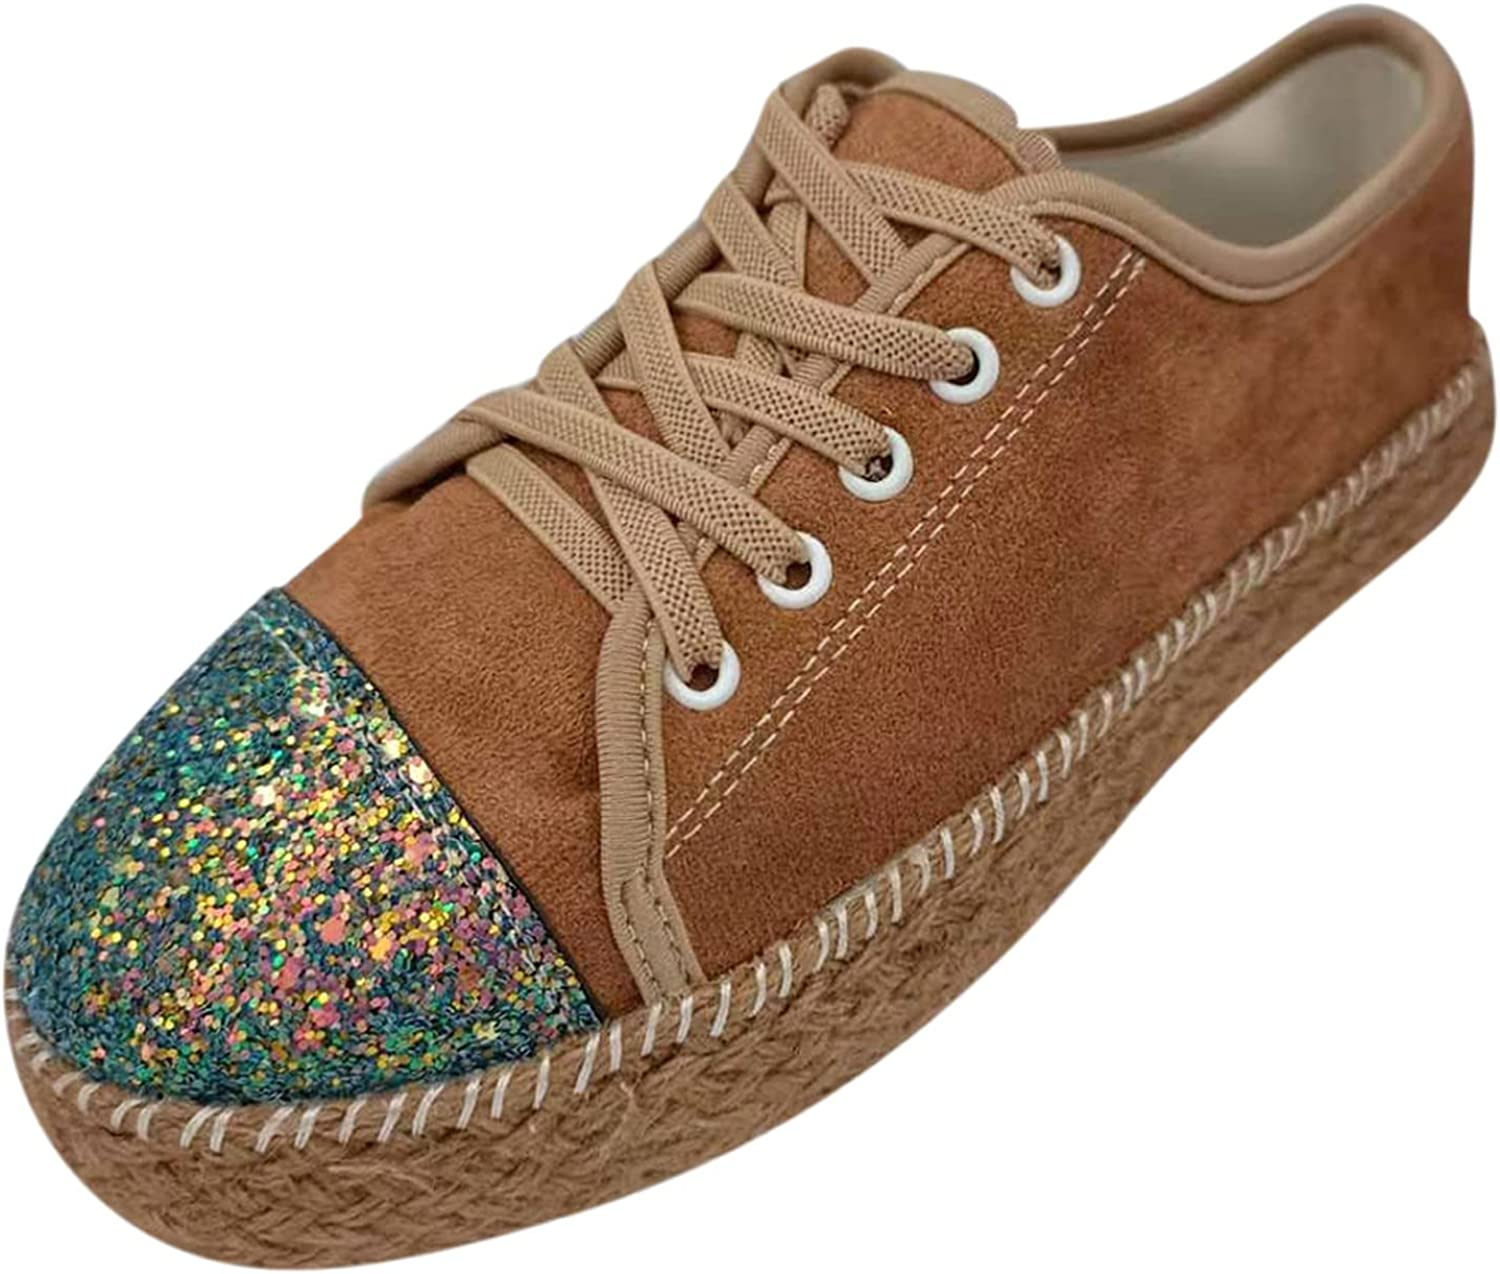 Women's Walking Shoes Womens' Low Tops Canvas Sneakers Shoes,Black/Optical White Multicoloured